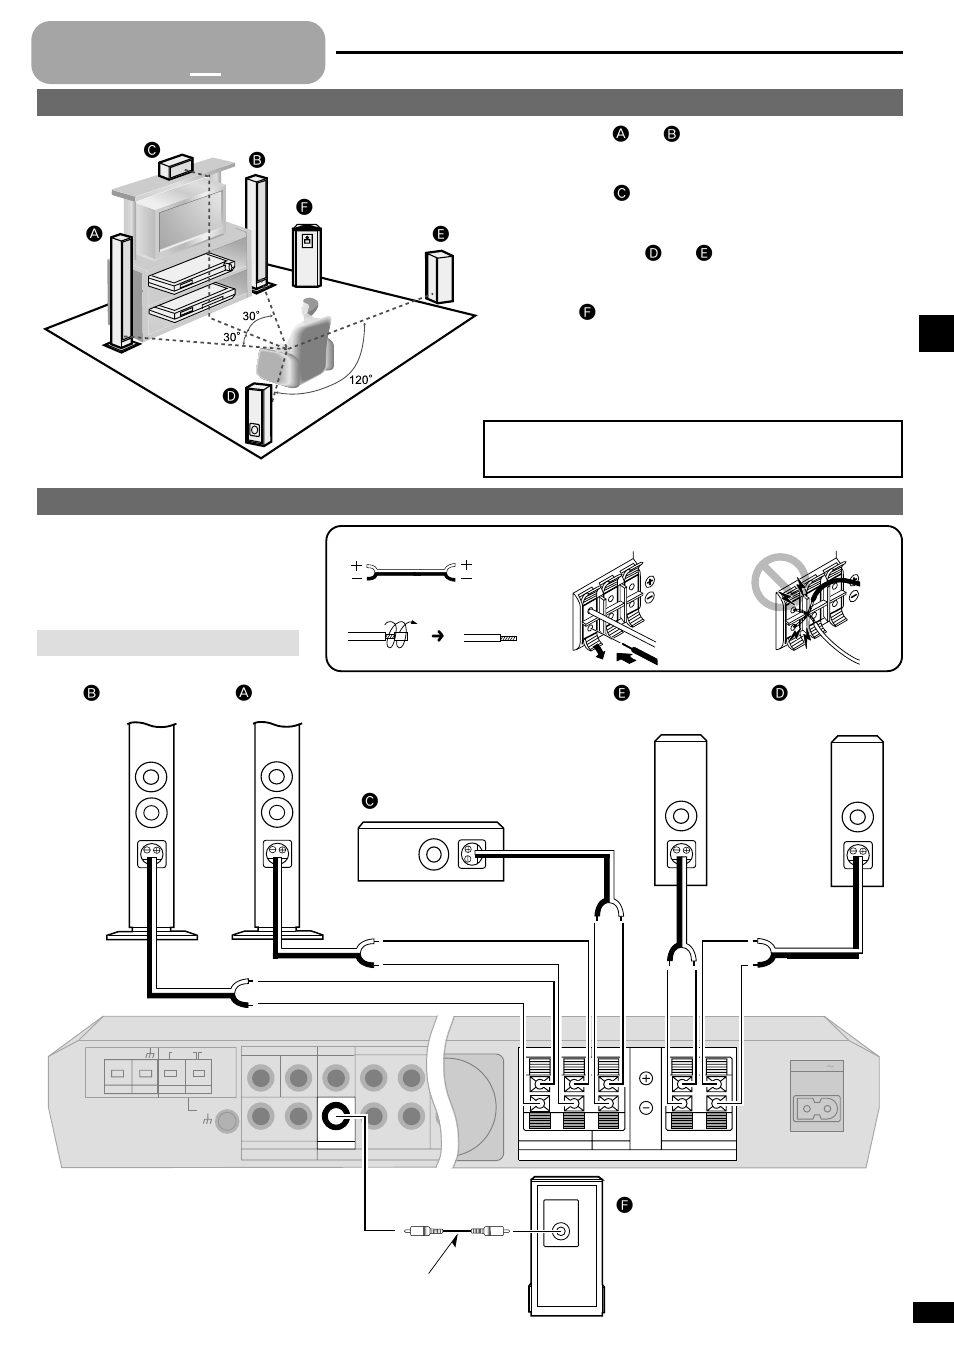 hight resolution of step 1 speaker connections step speaker connections panasonic sa xr10 en user manual page 5 24